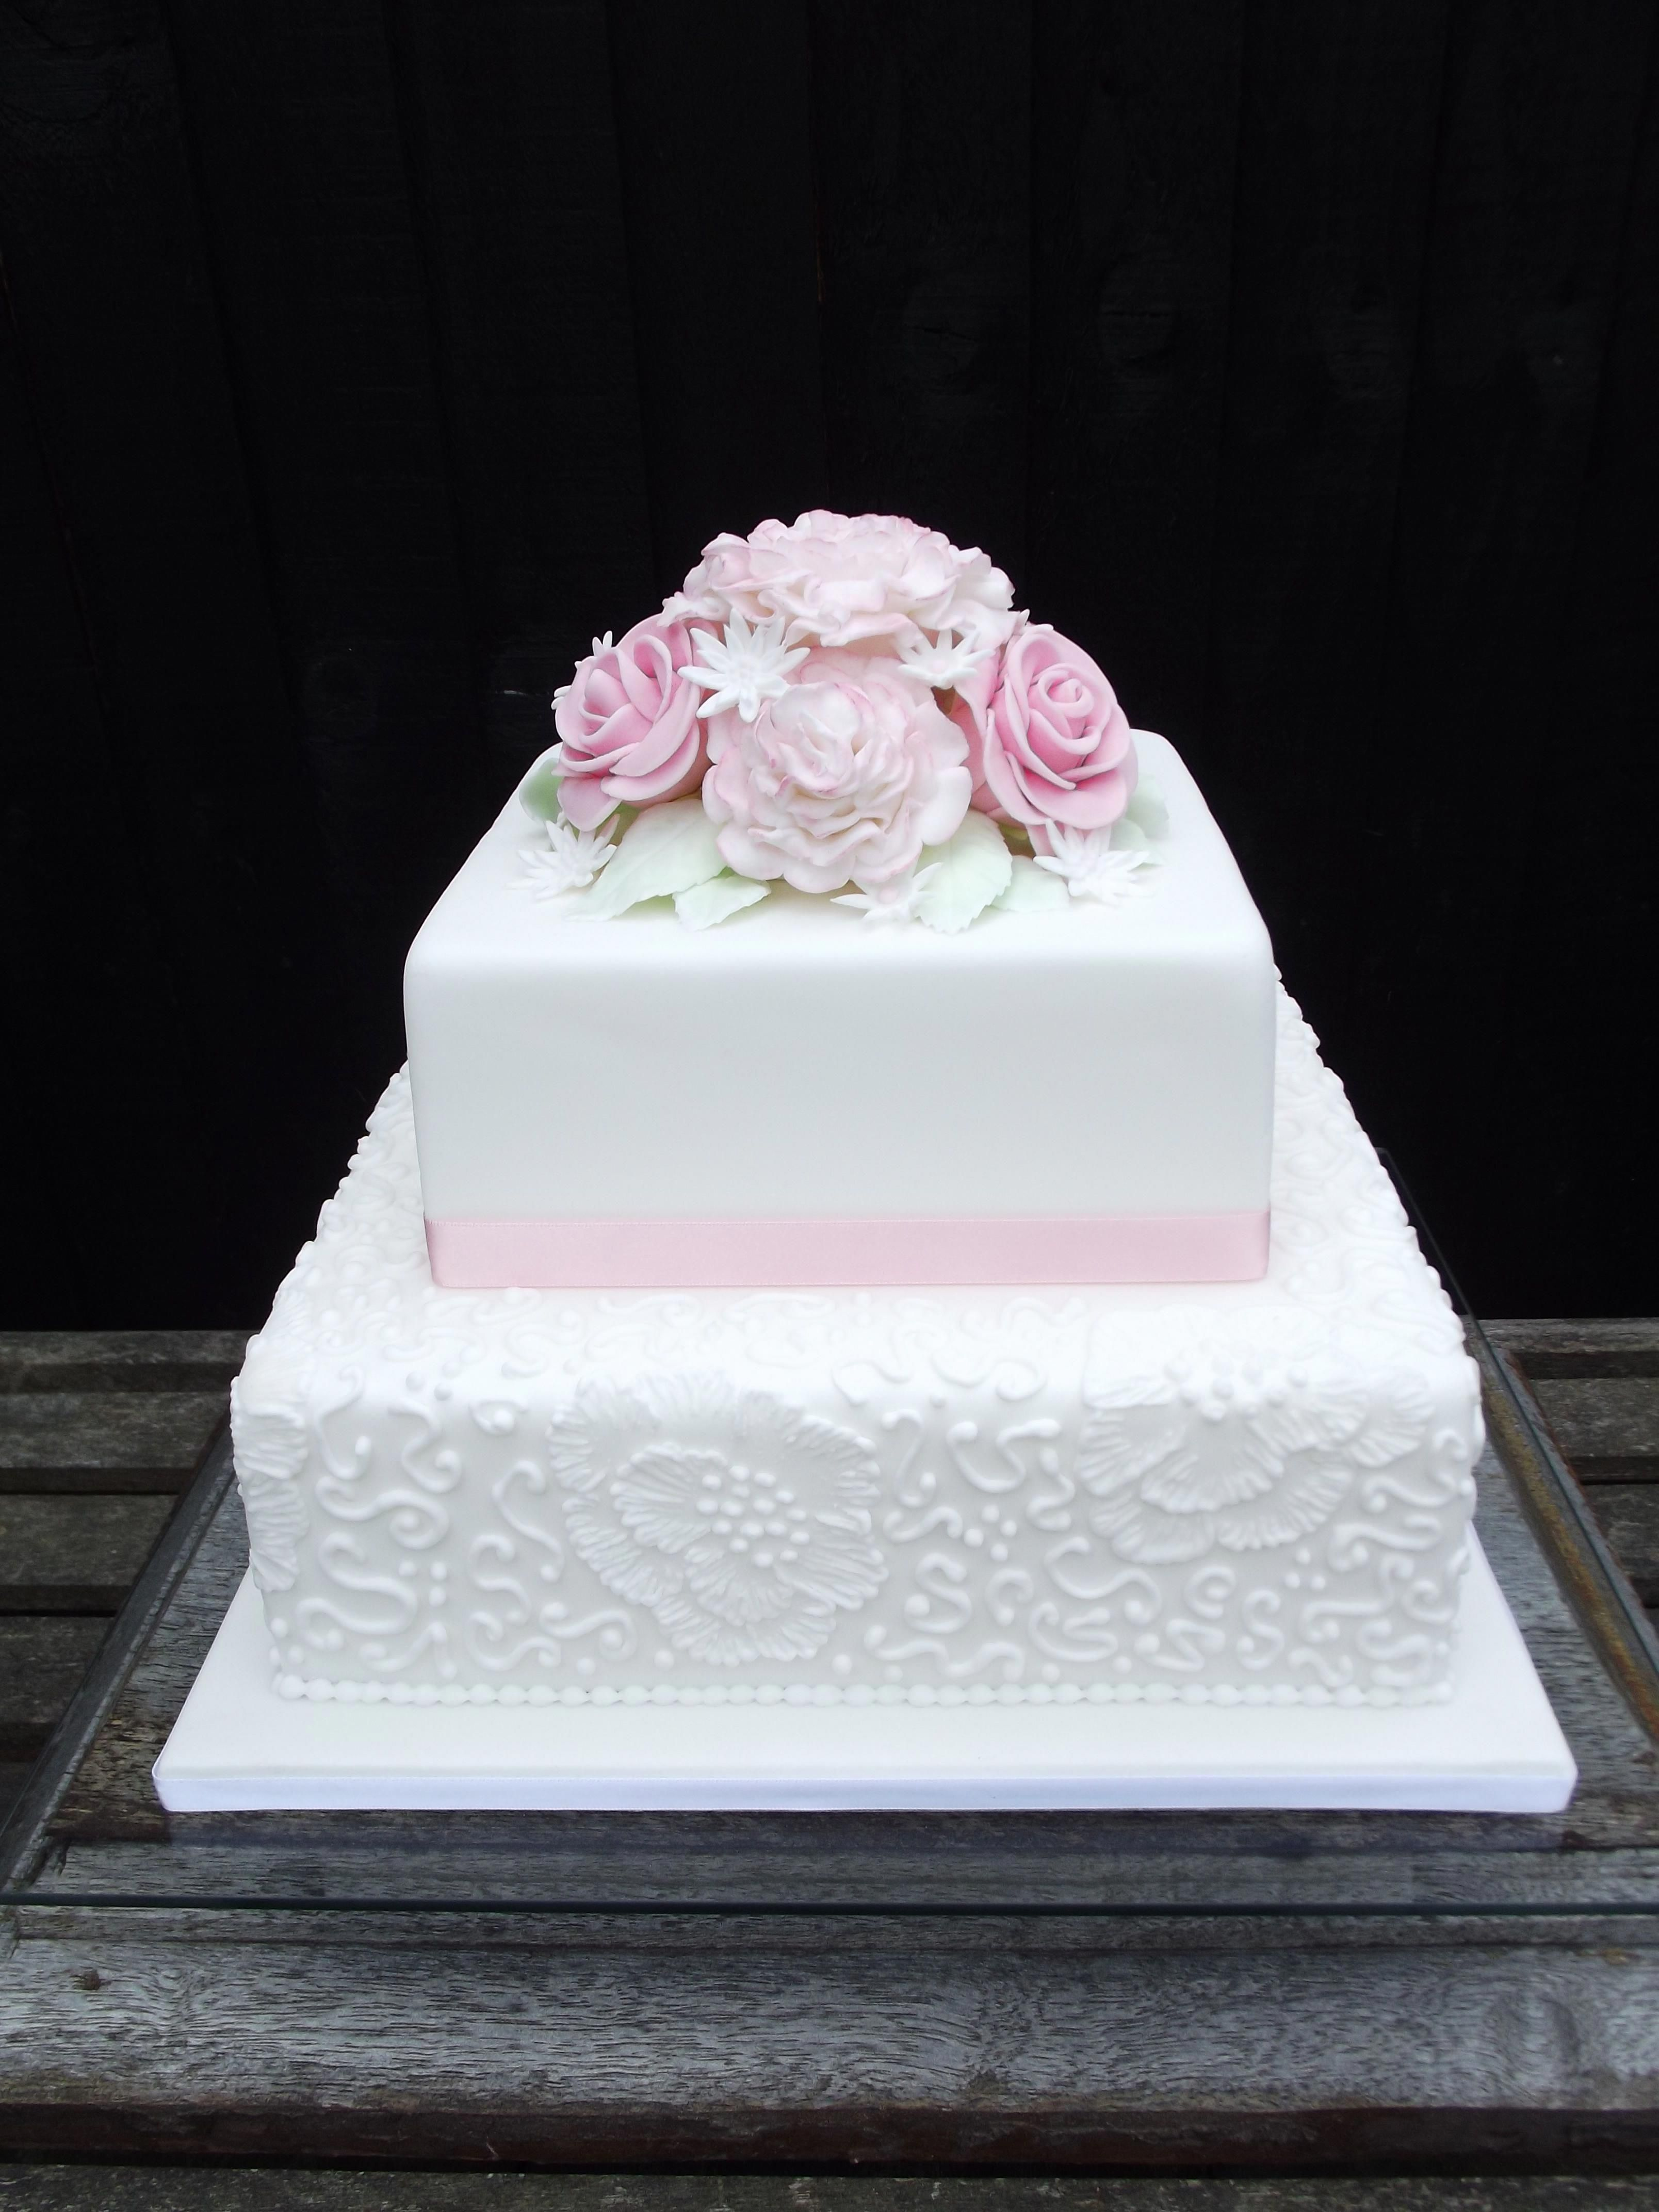 Naked Square Tiered Wedding Cake With White Roses